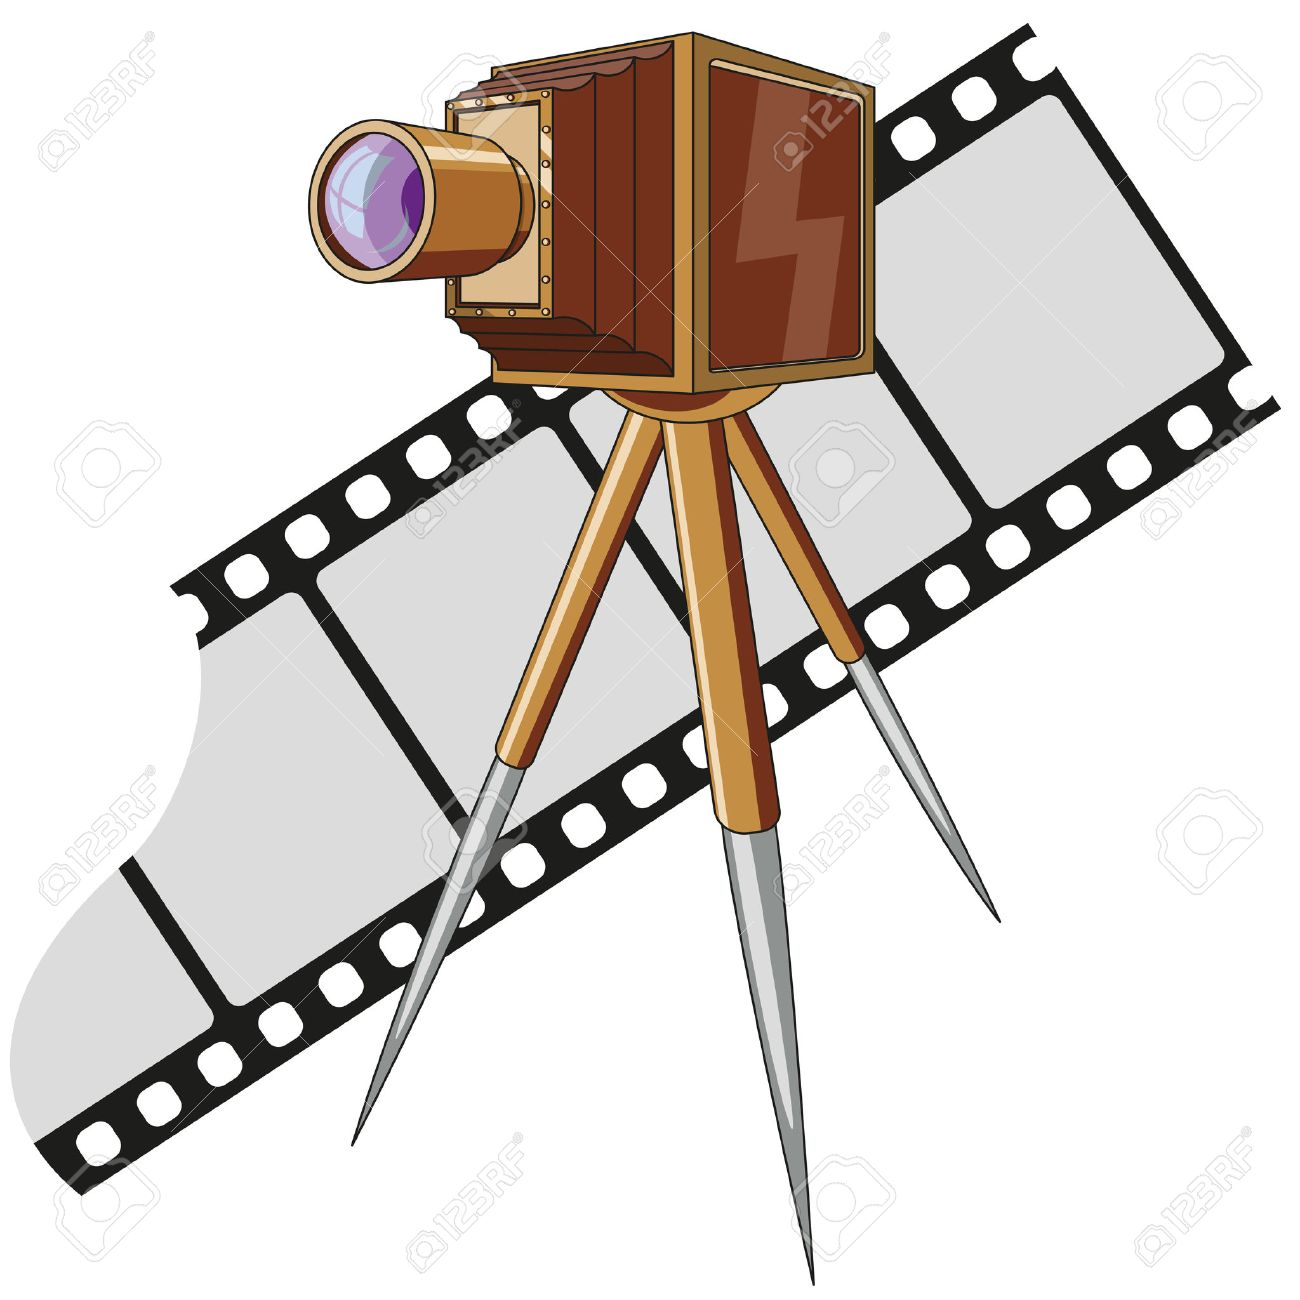 Old photo camera with tripod Stock Vector - 24504167